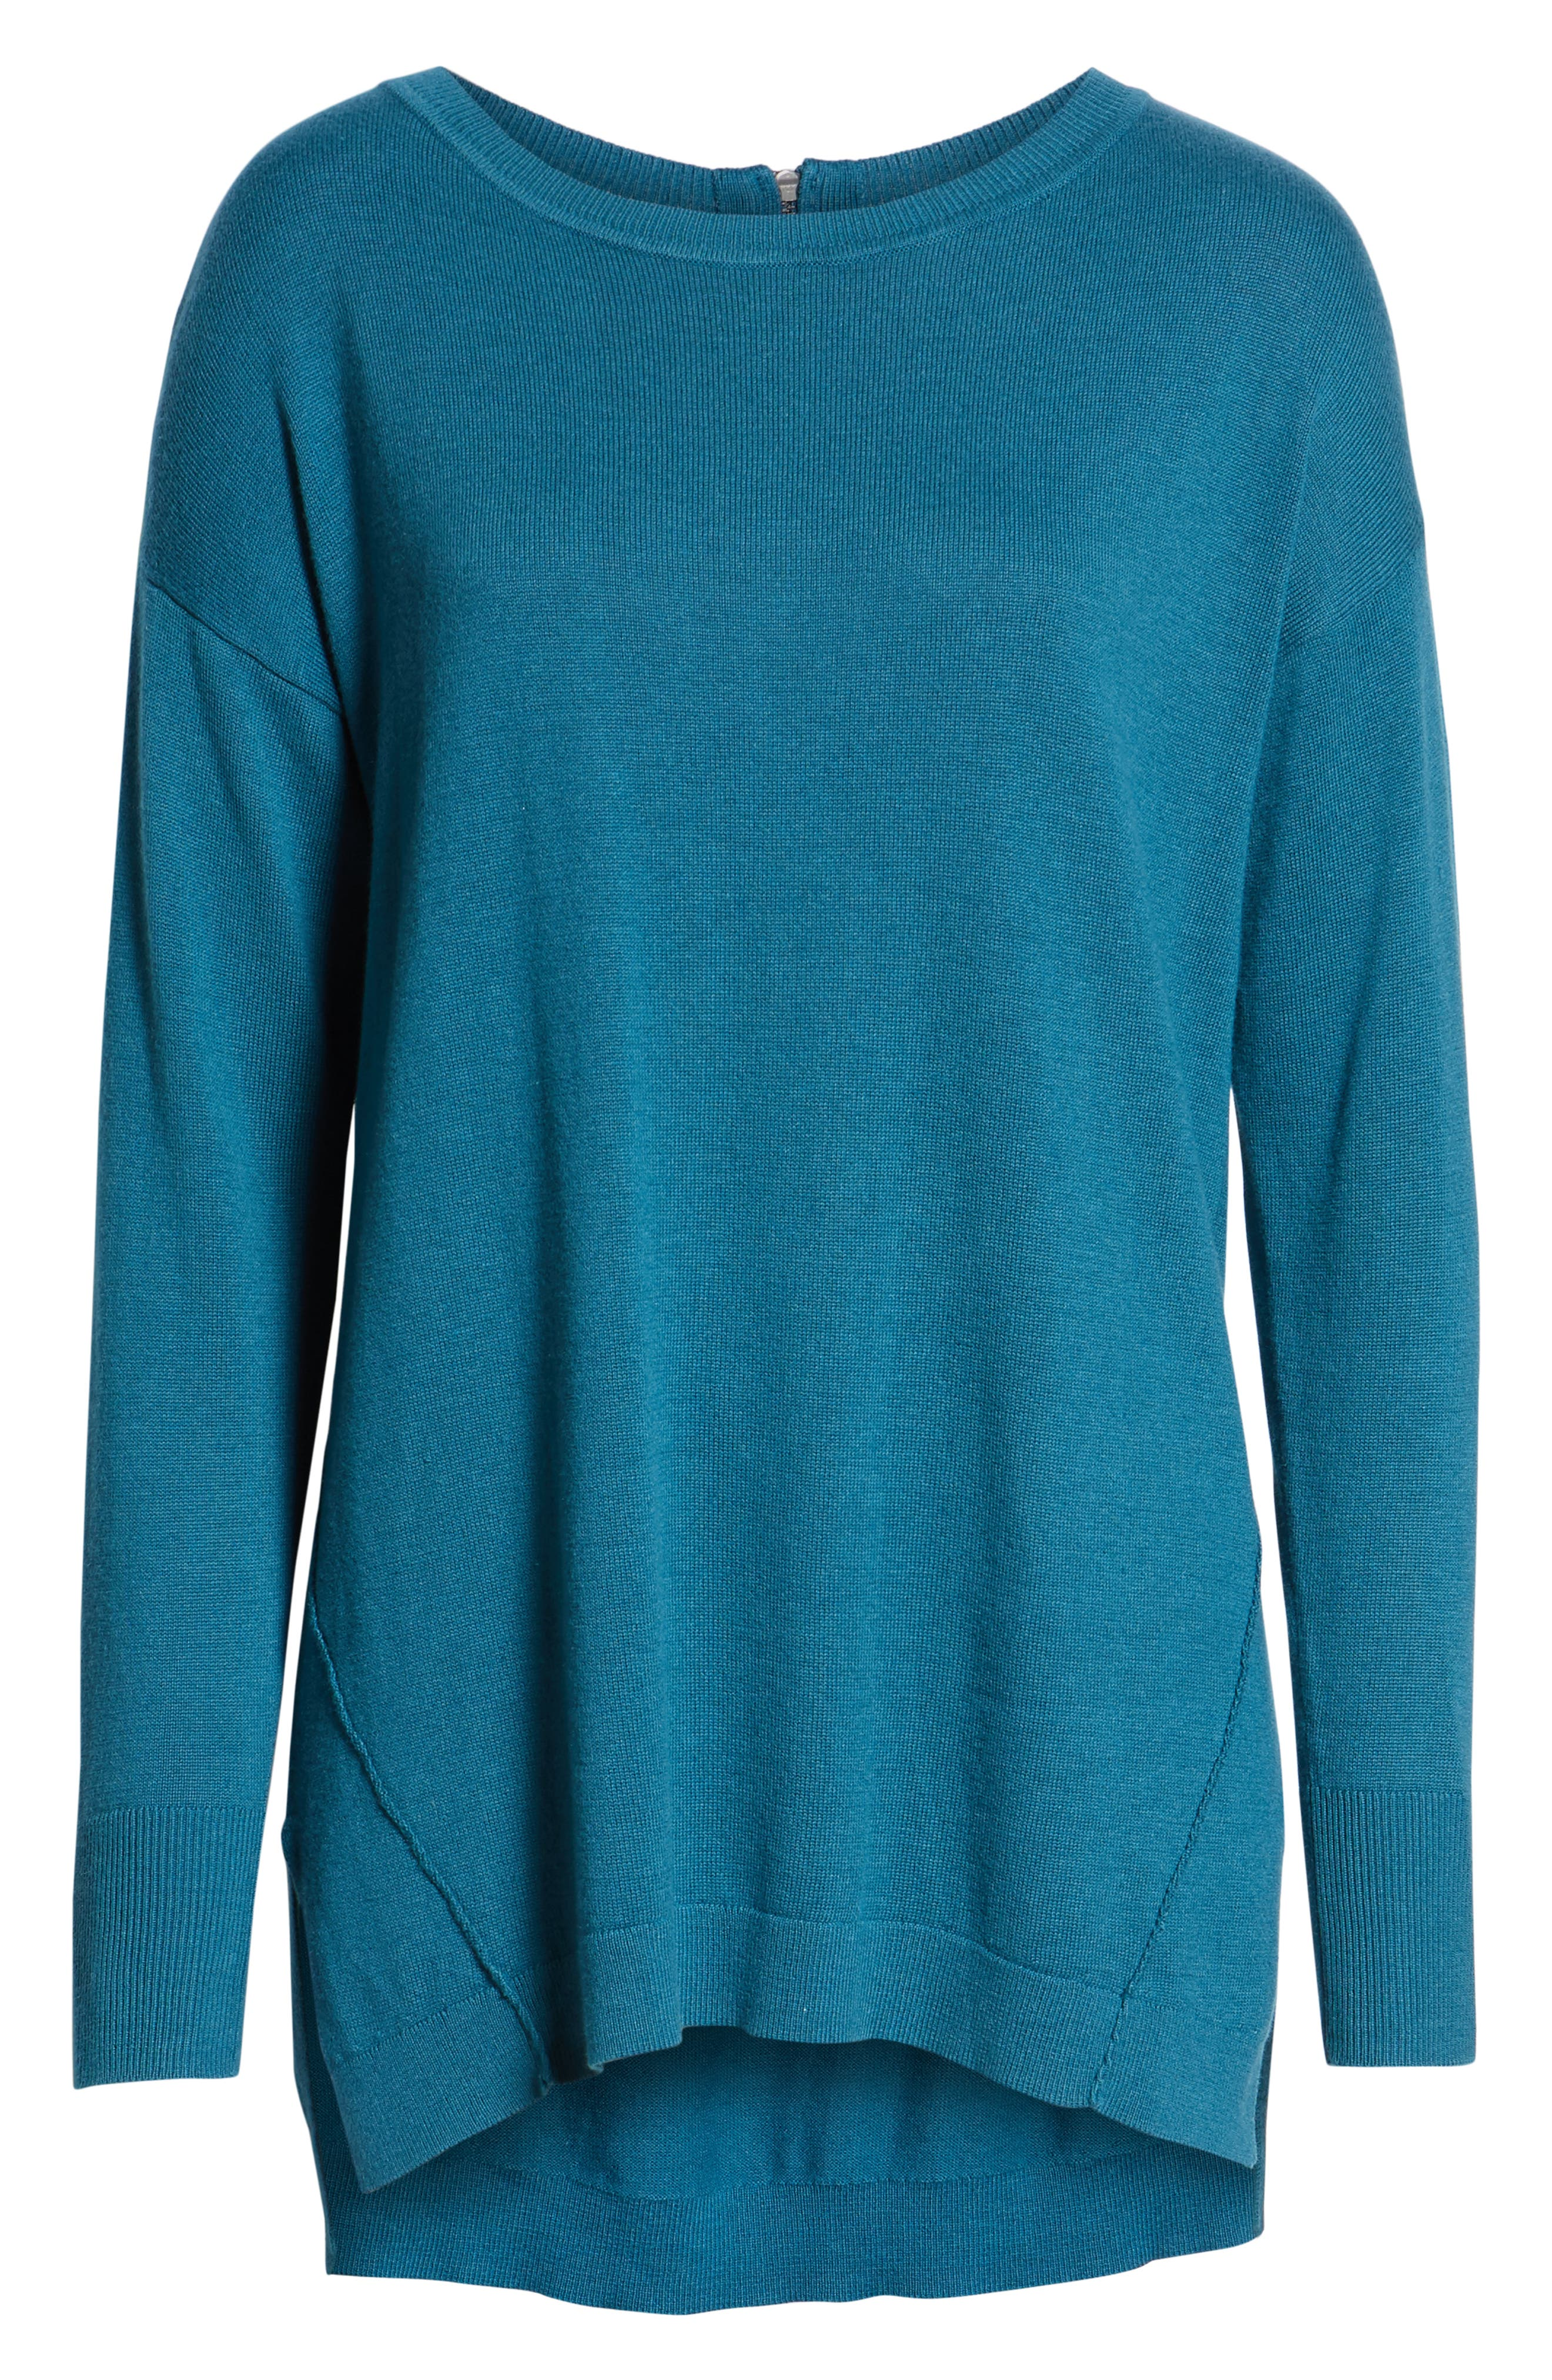 Zip Back High/Low Tunic Sweater,                             Alternate thumbnail 6, color,                             TEAL CORAL